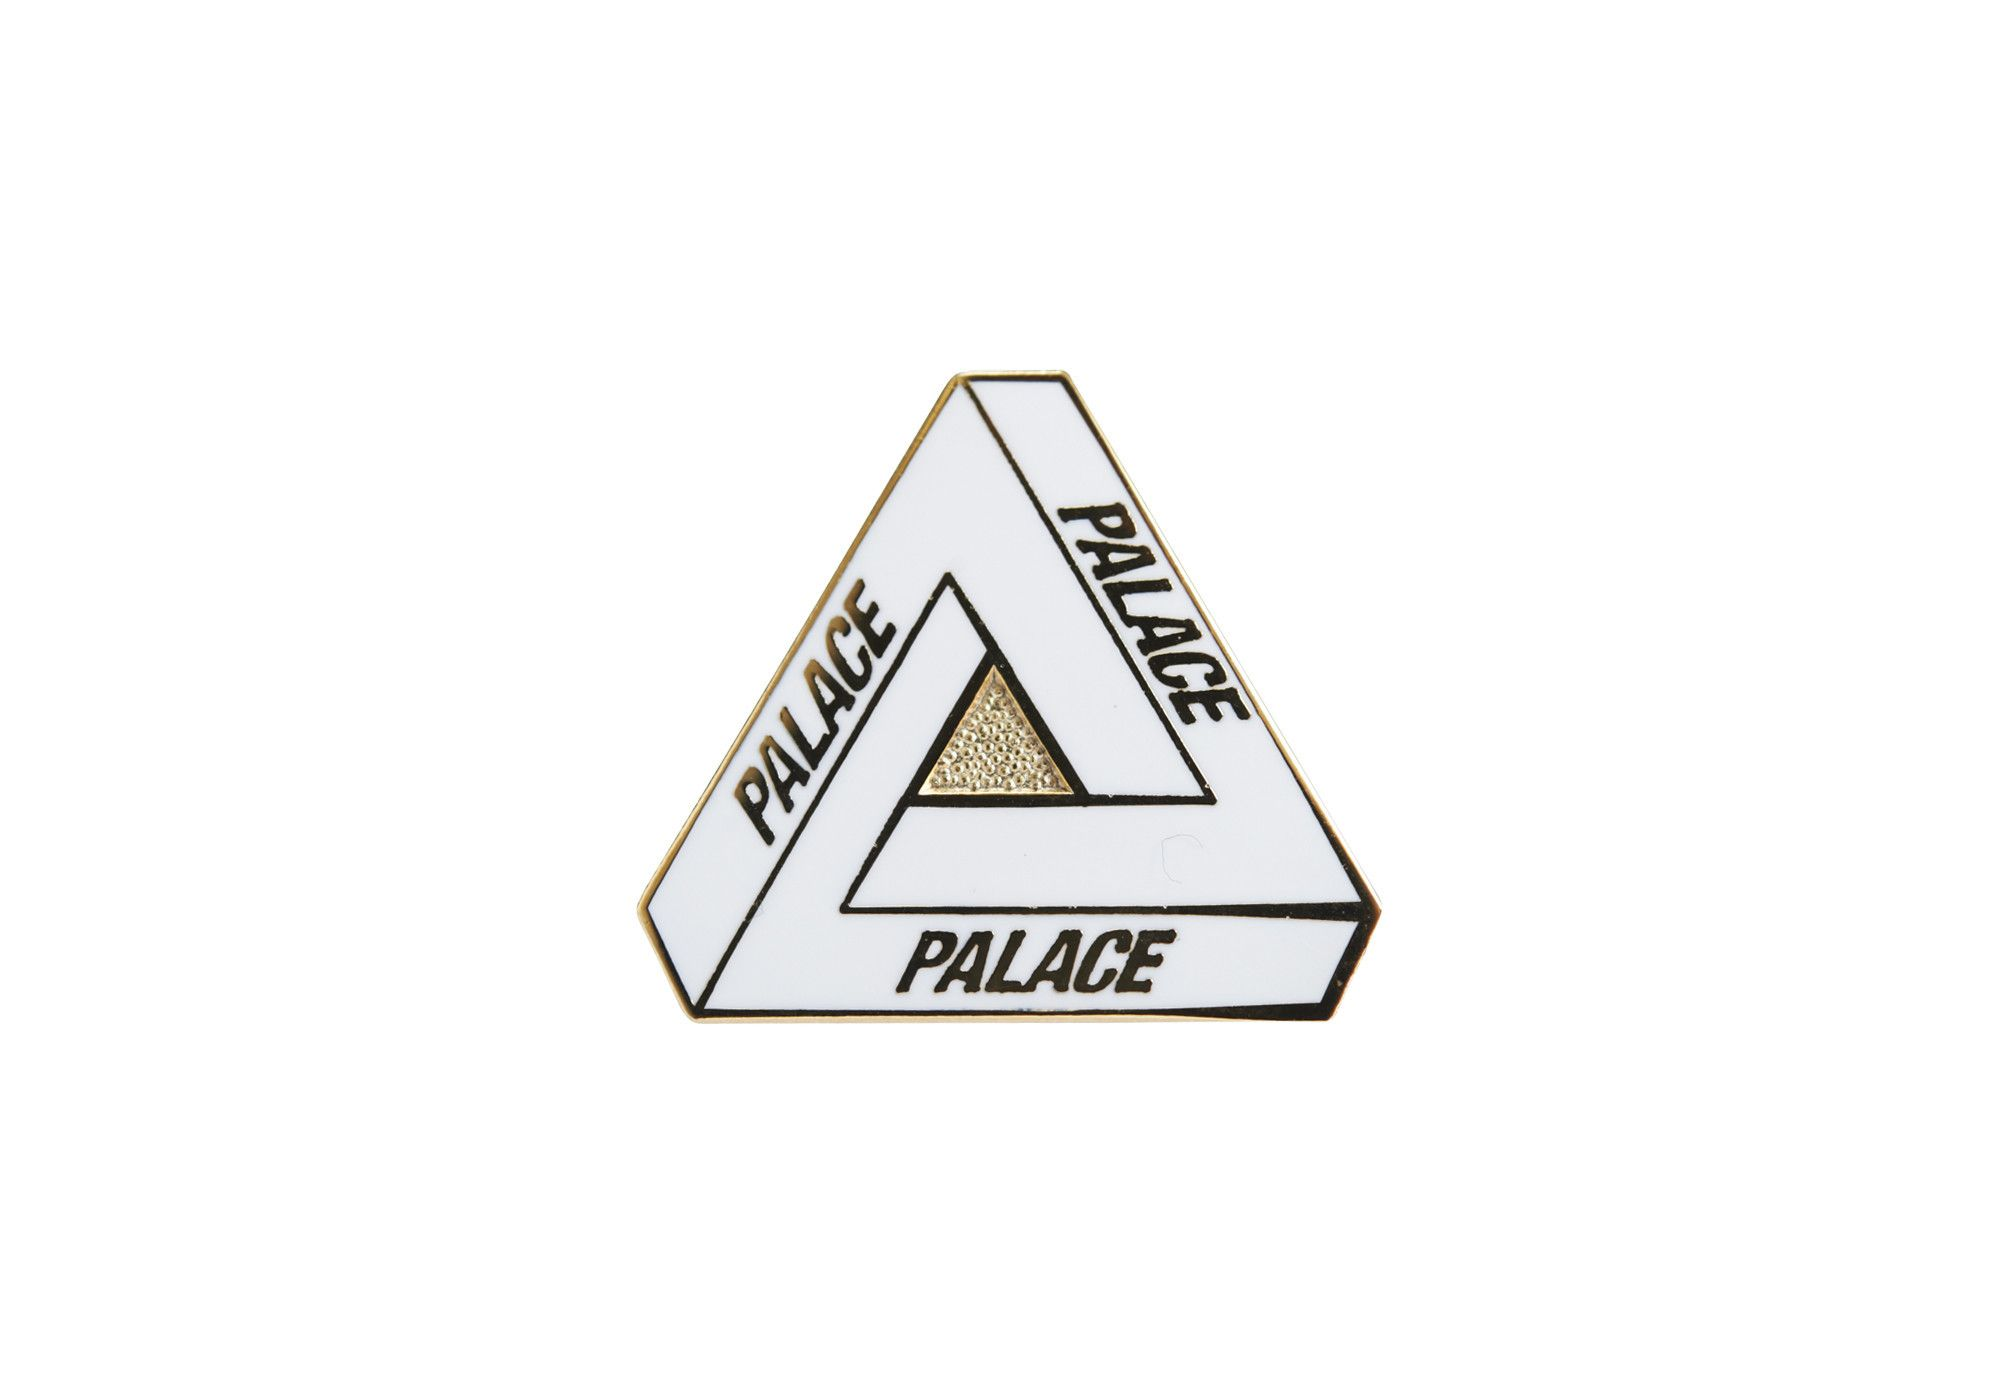 Palace Brand Wallpapers On Wallpaperdog